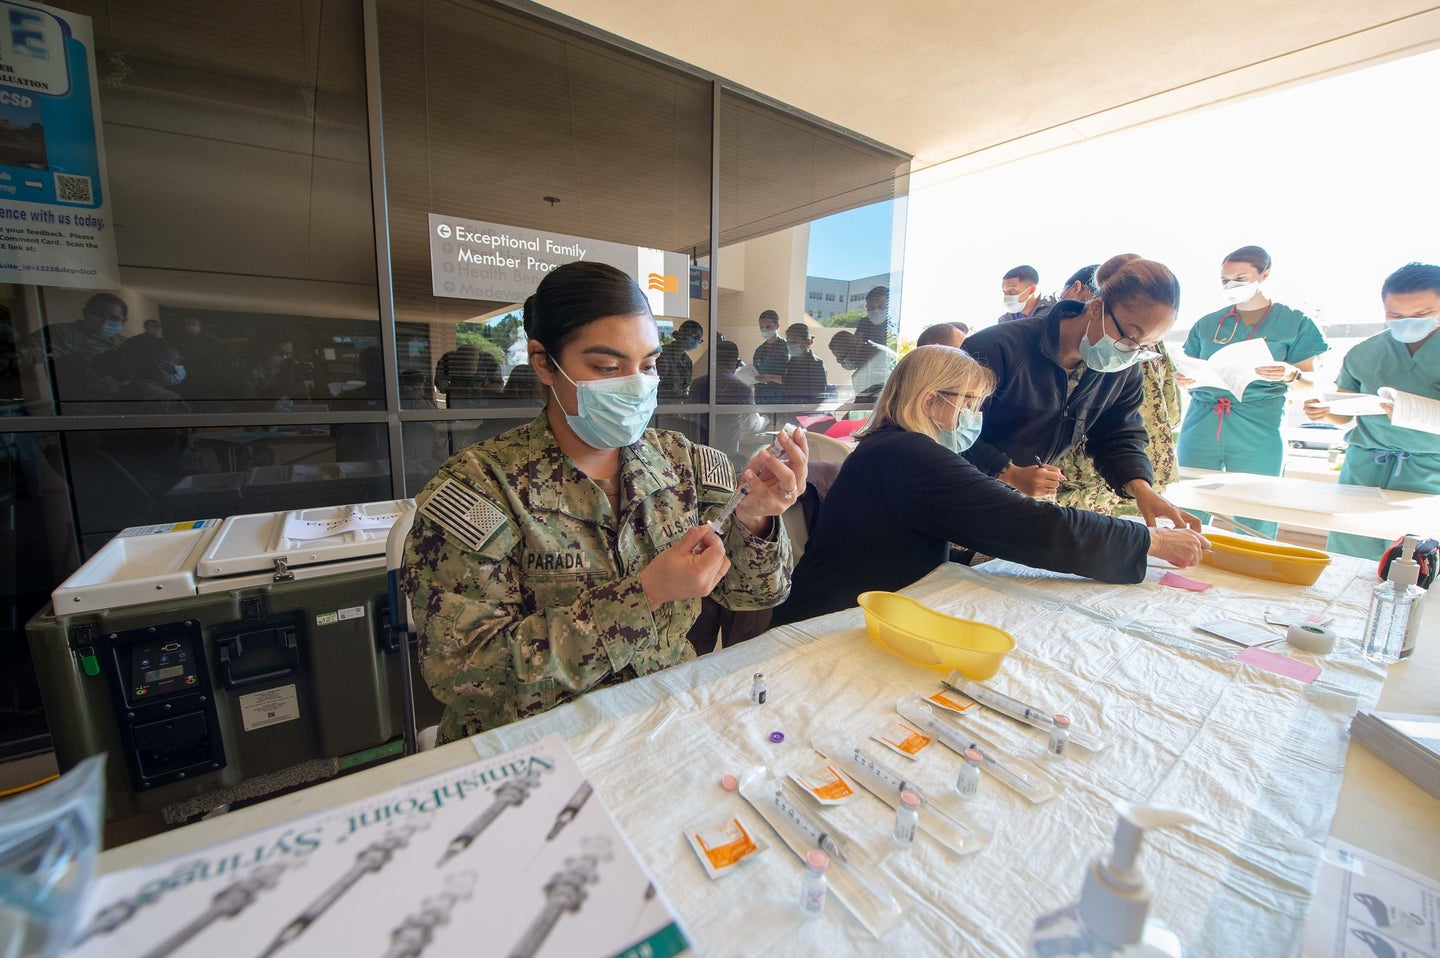 A US sailor at the Naval Medical Center in San Diego, California, prepares Pfizer COVID-19 vaccines for rollout